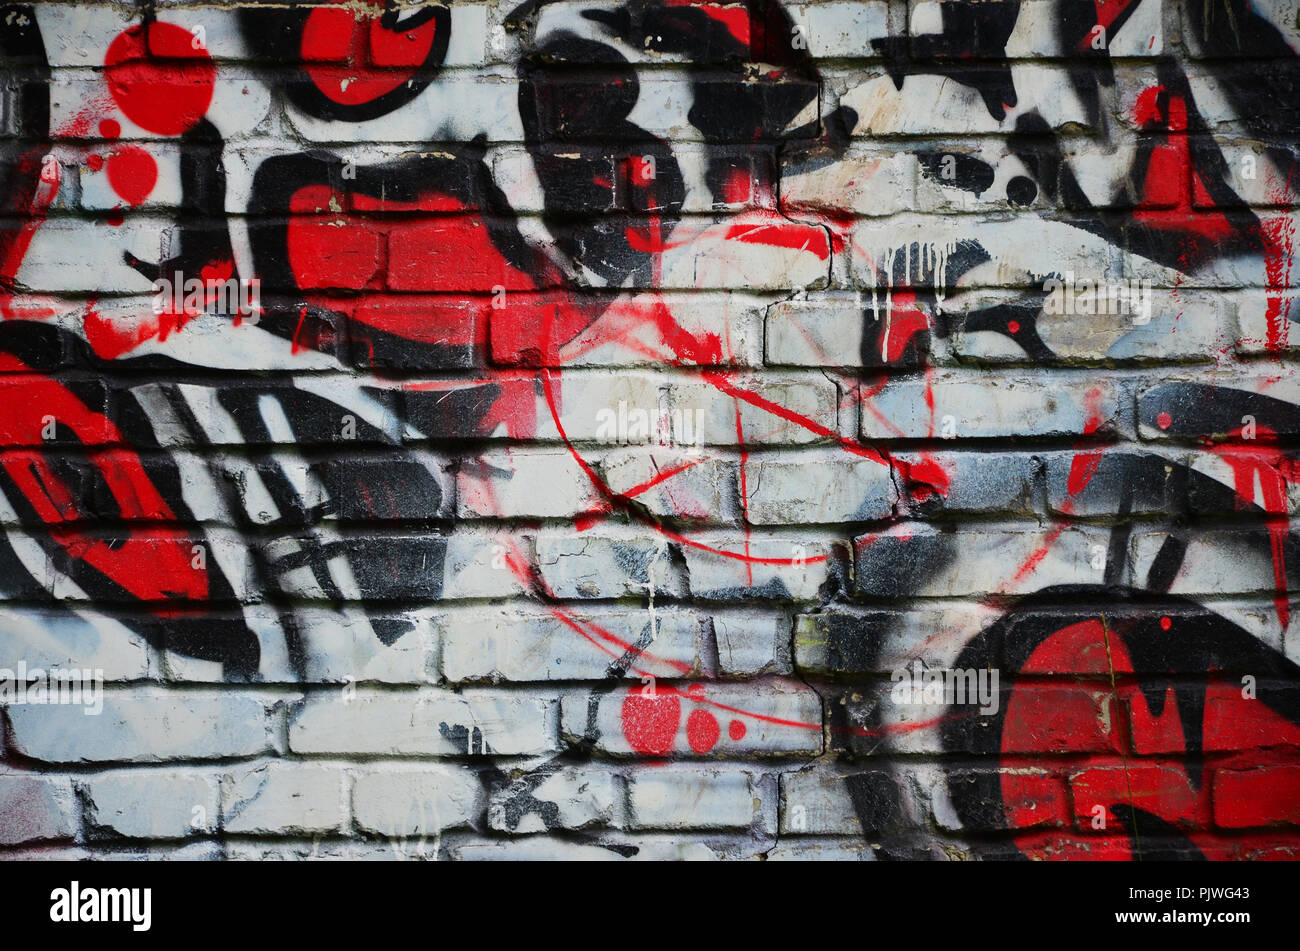 Some elements of a large and composite graffiti pattern on